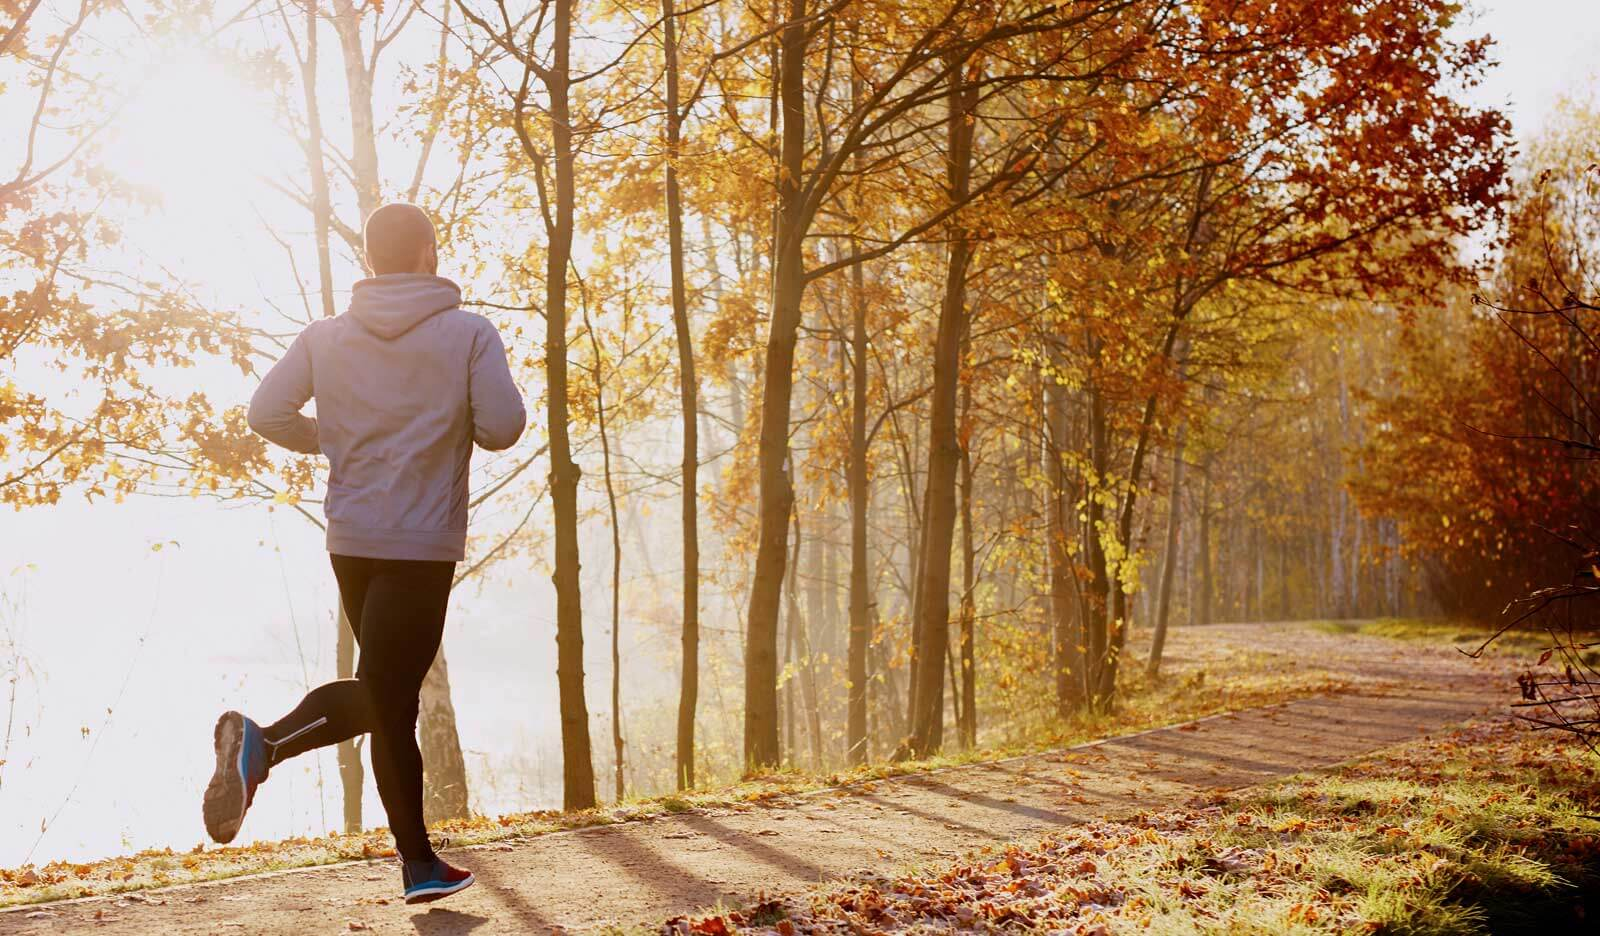 ex-smoker runs with ease after his circulation and lung capacity has improved after stopping smoking